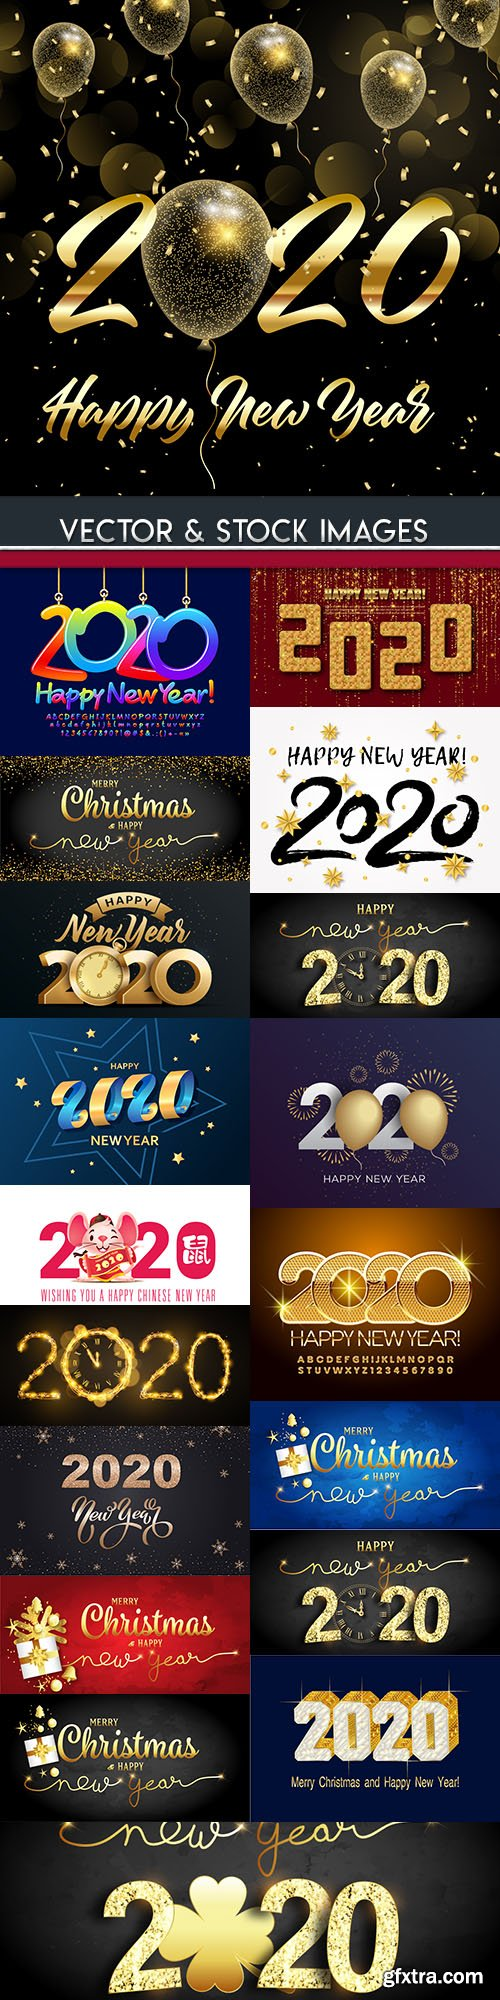 New Year and Christmas decorative 2020 illustration 6